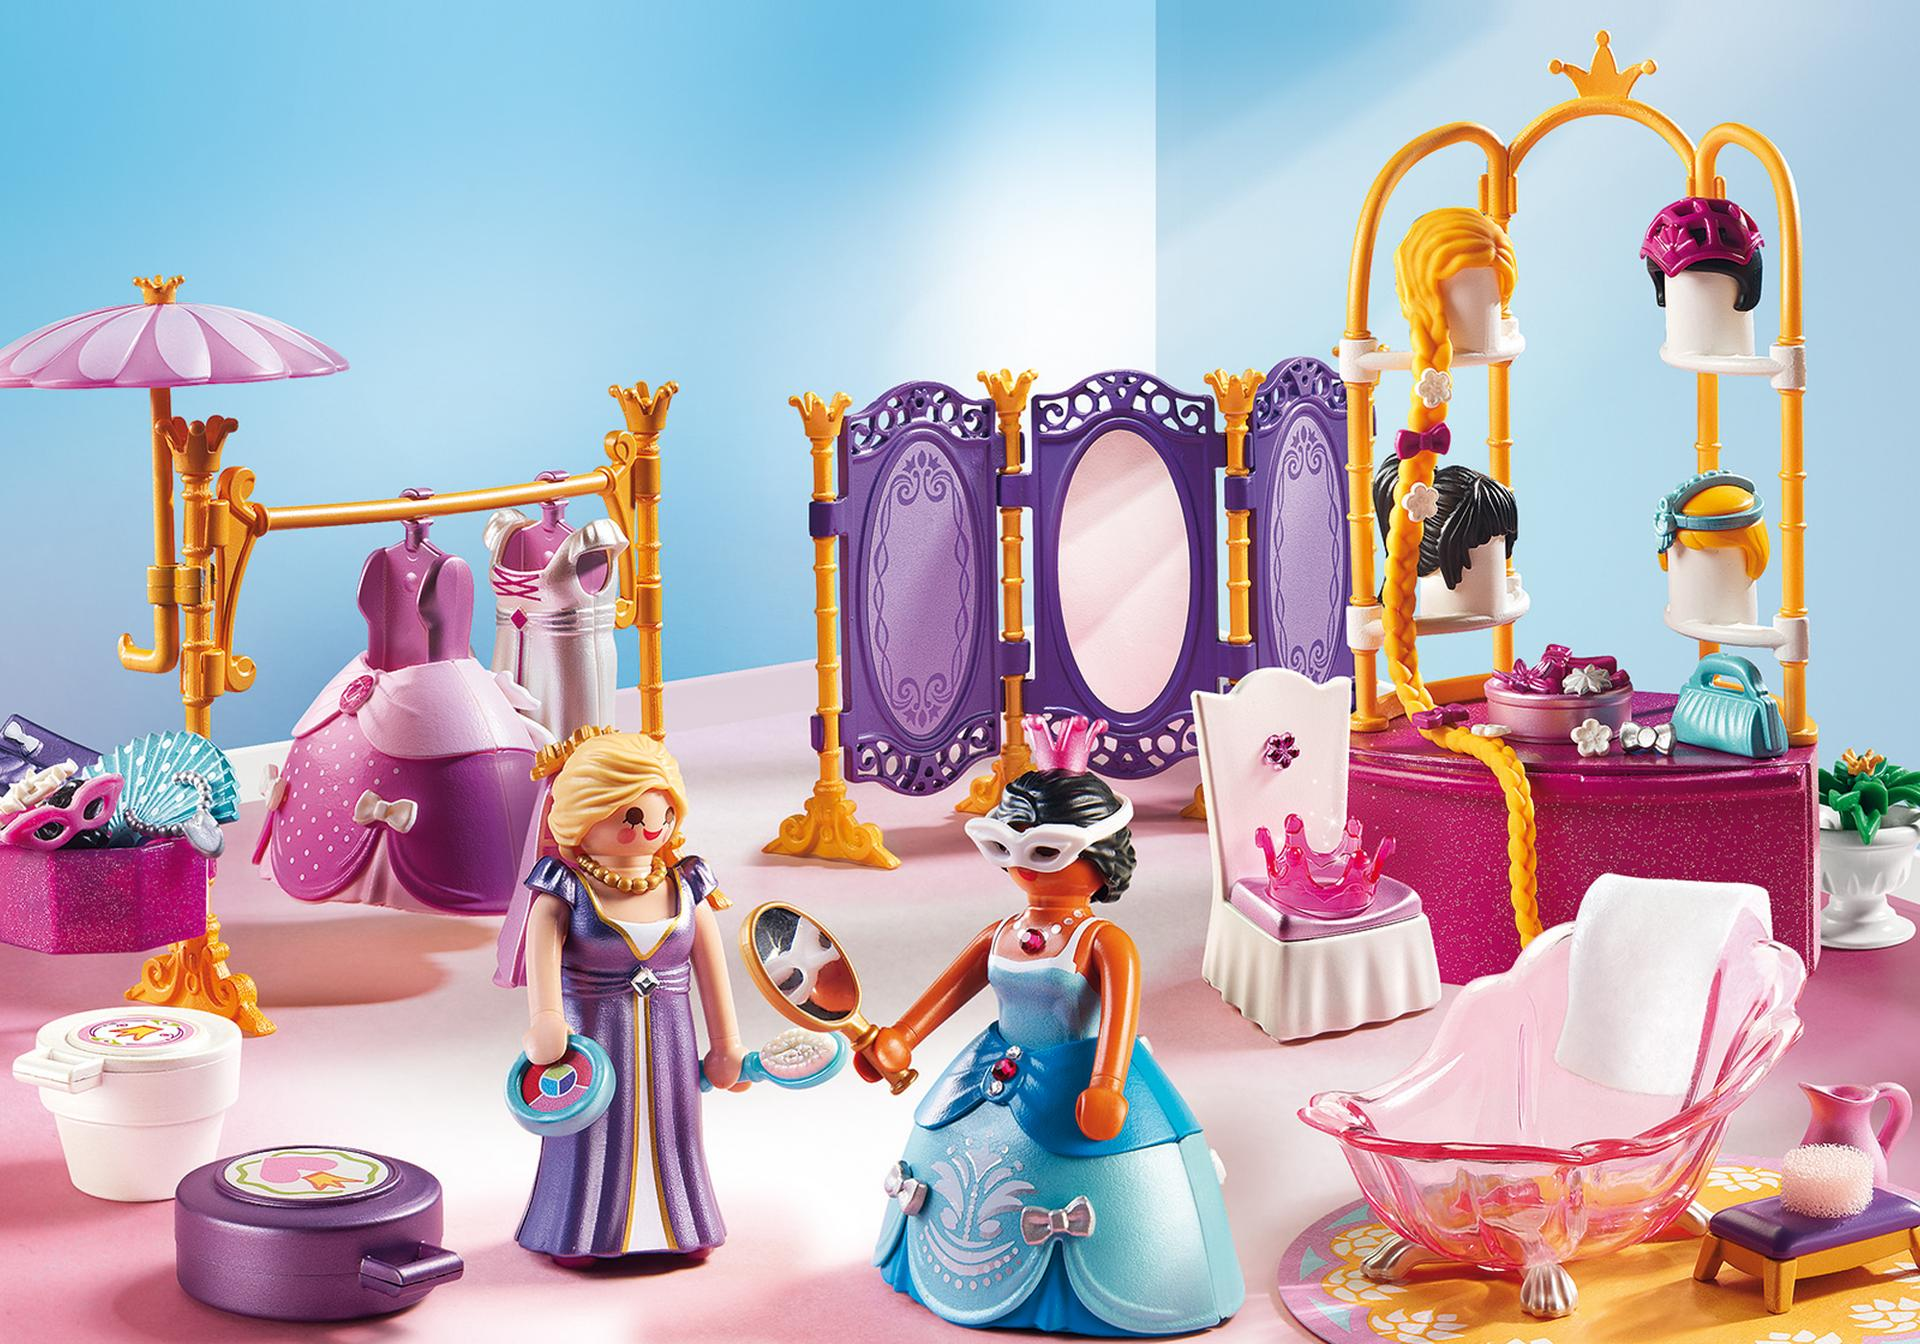 Salon de beaut avec princesses 6850 playmobil france for Playmobil chambre princesse